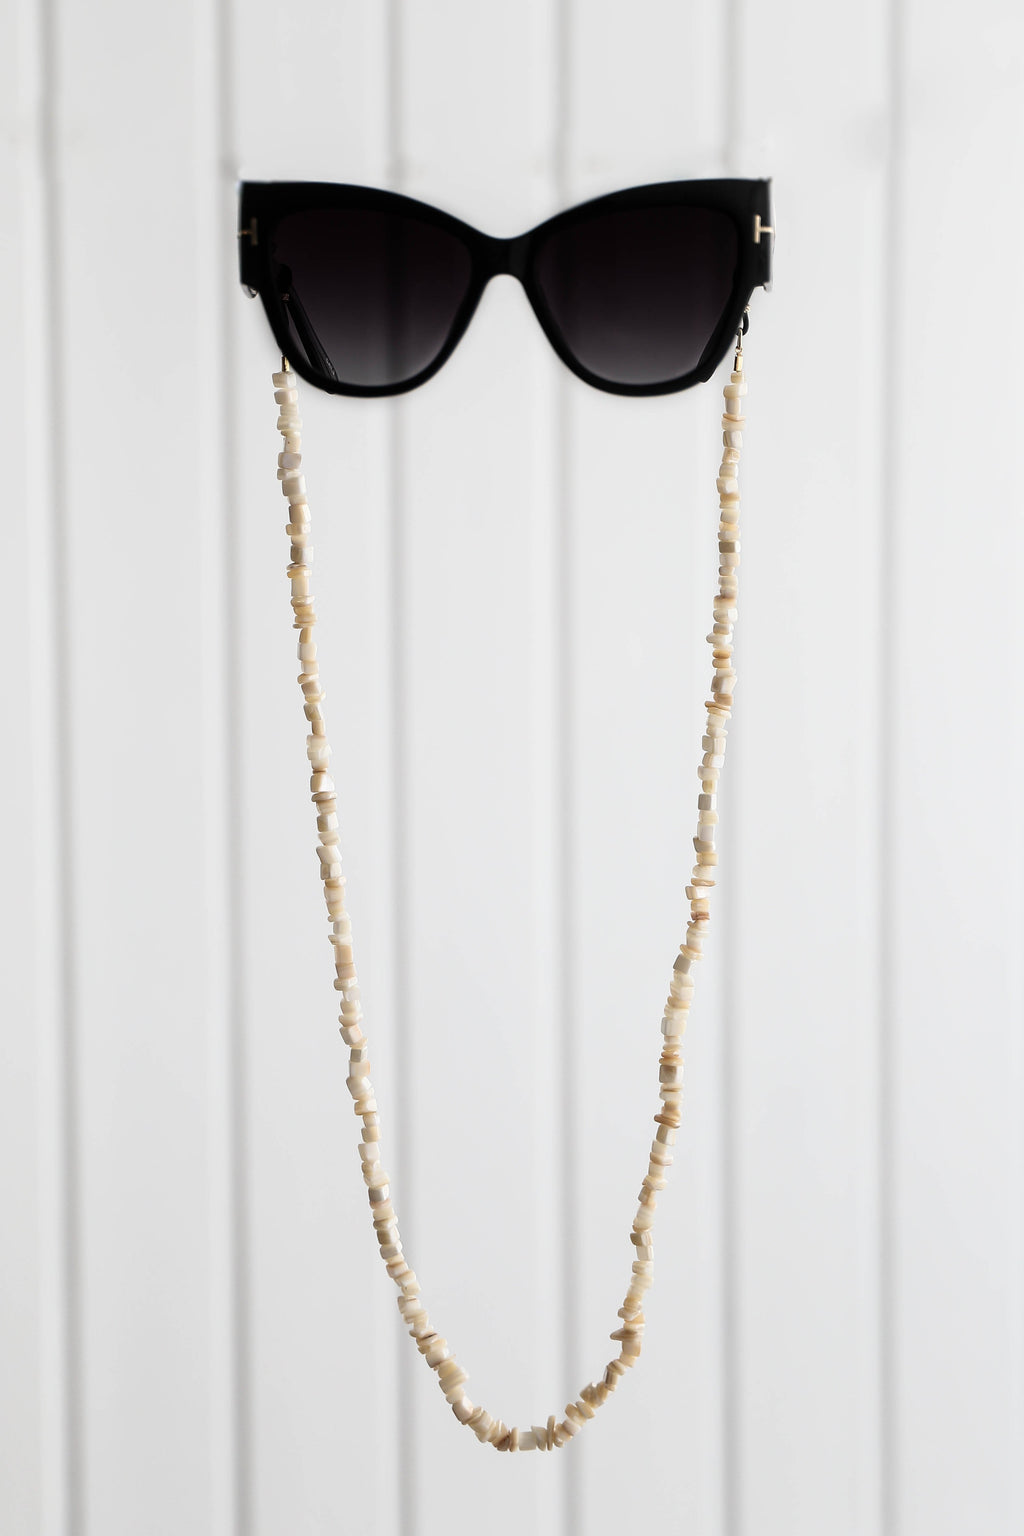 Beach - Sunglasses Chain - Boutique Minimaliste